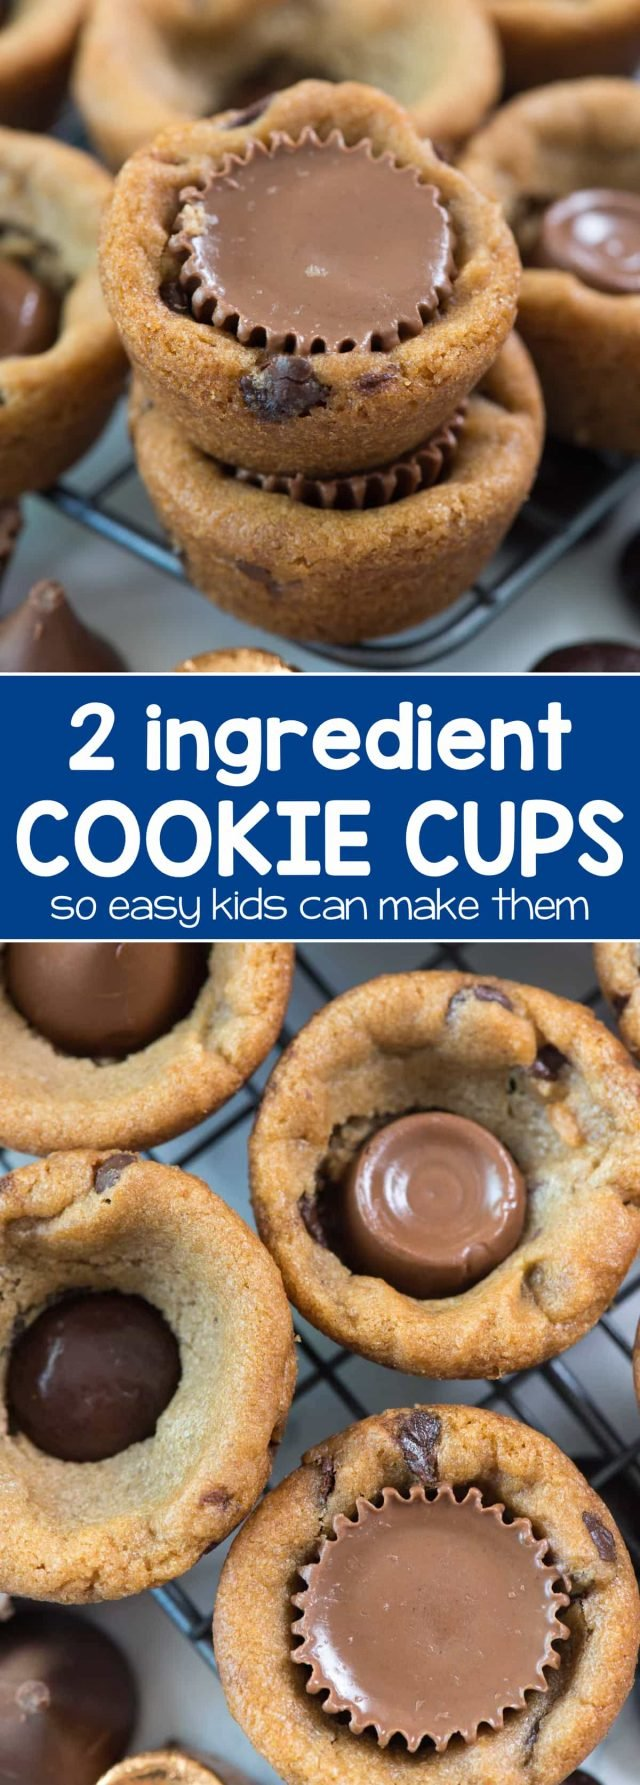 EASY 2 ingredient cookie cups! Use your favorite cookie dough recipe or packaged dough to make an easy treat everyone loves. Add your favorite candy for a fun surprise!